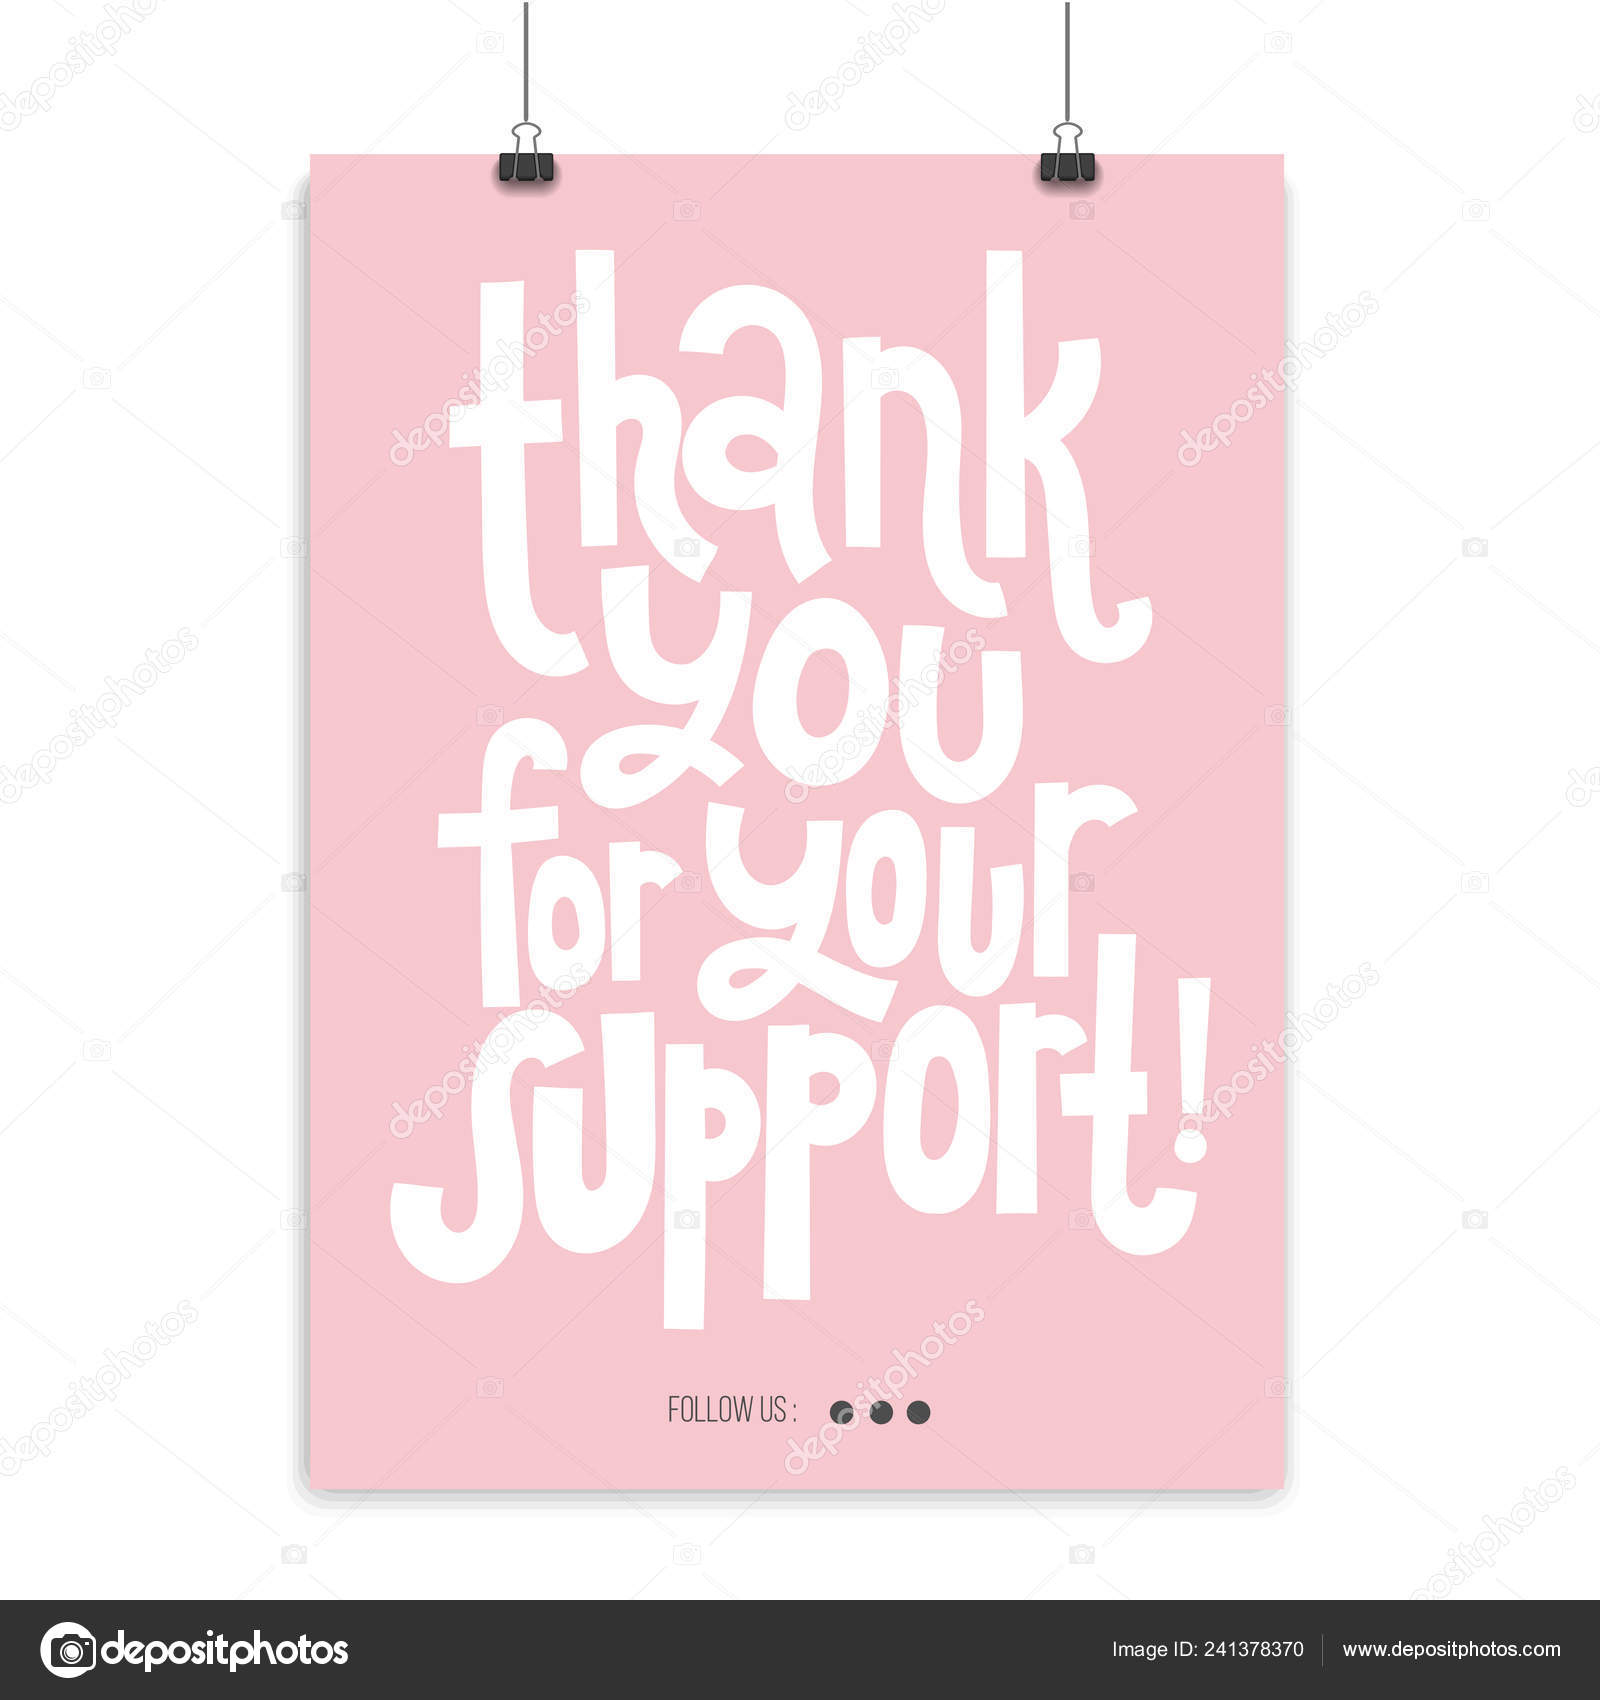 Thank you quotes and stickers — Stock Vector ...